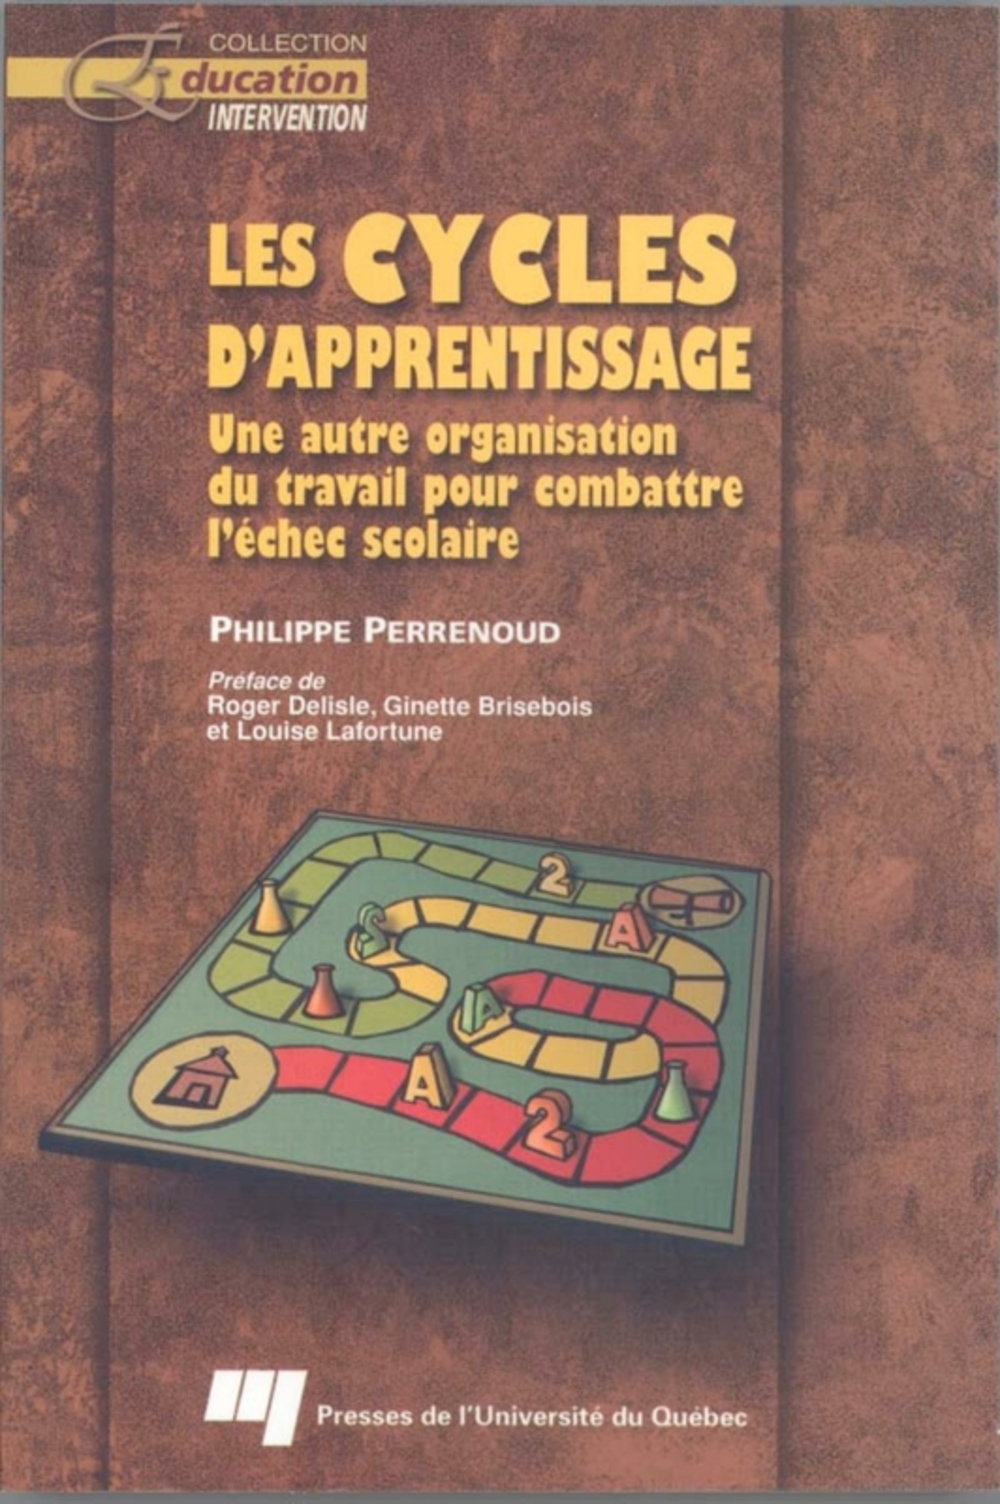 Les cycles d'apprentissage